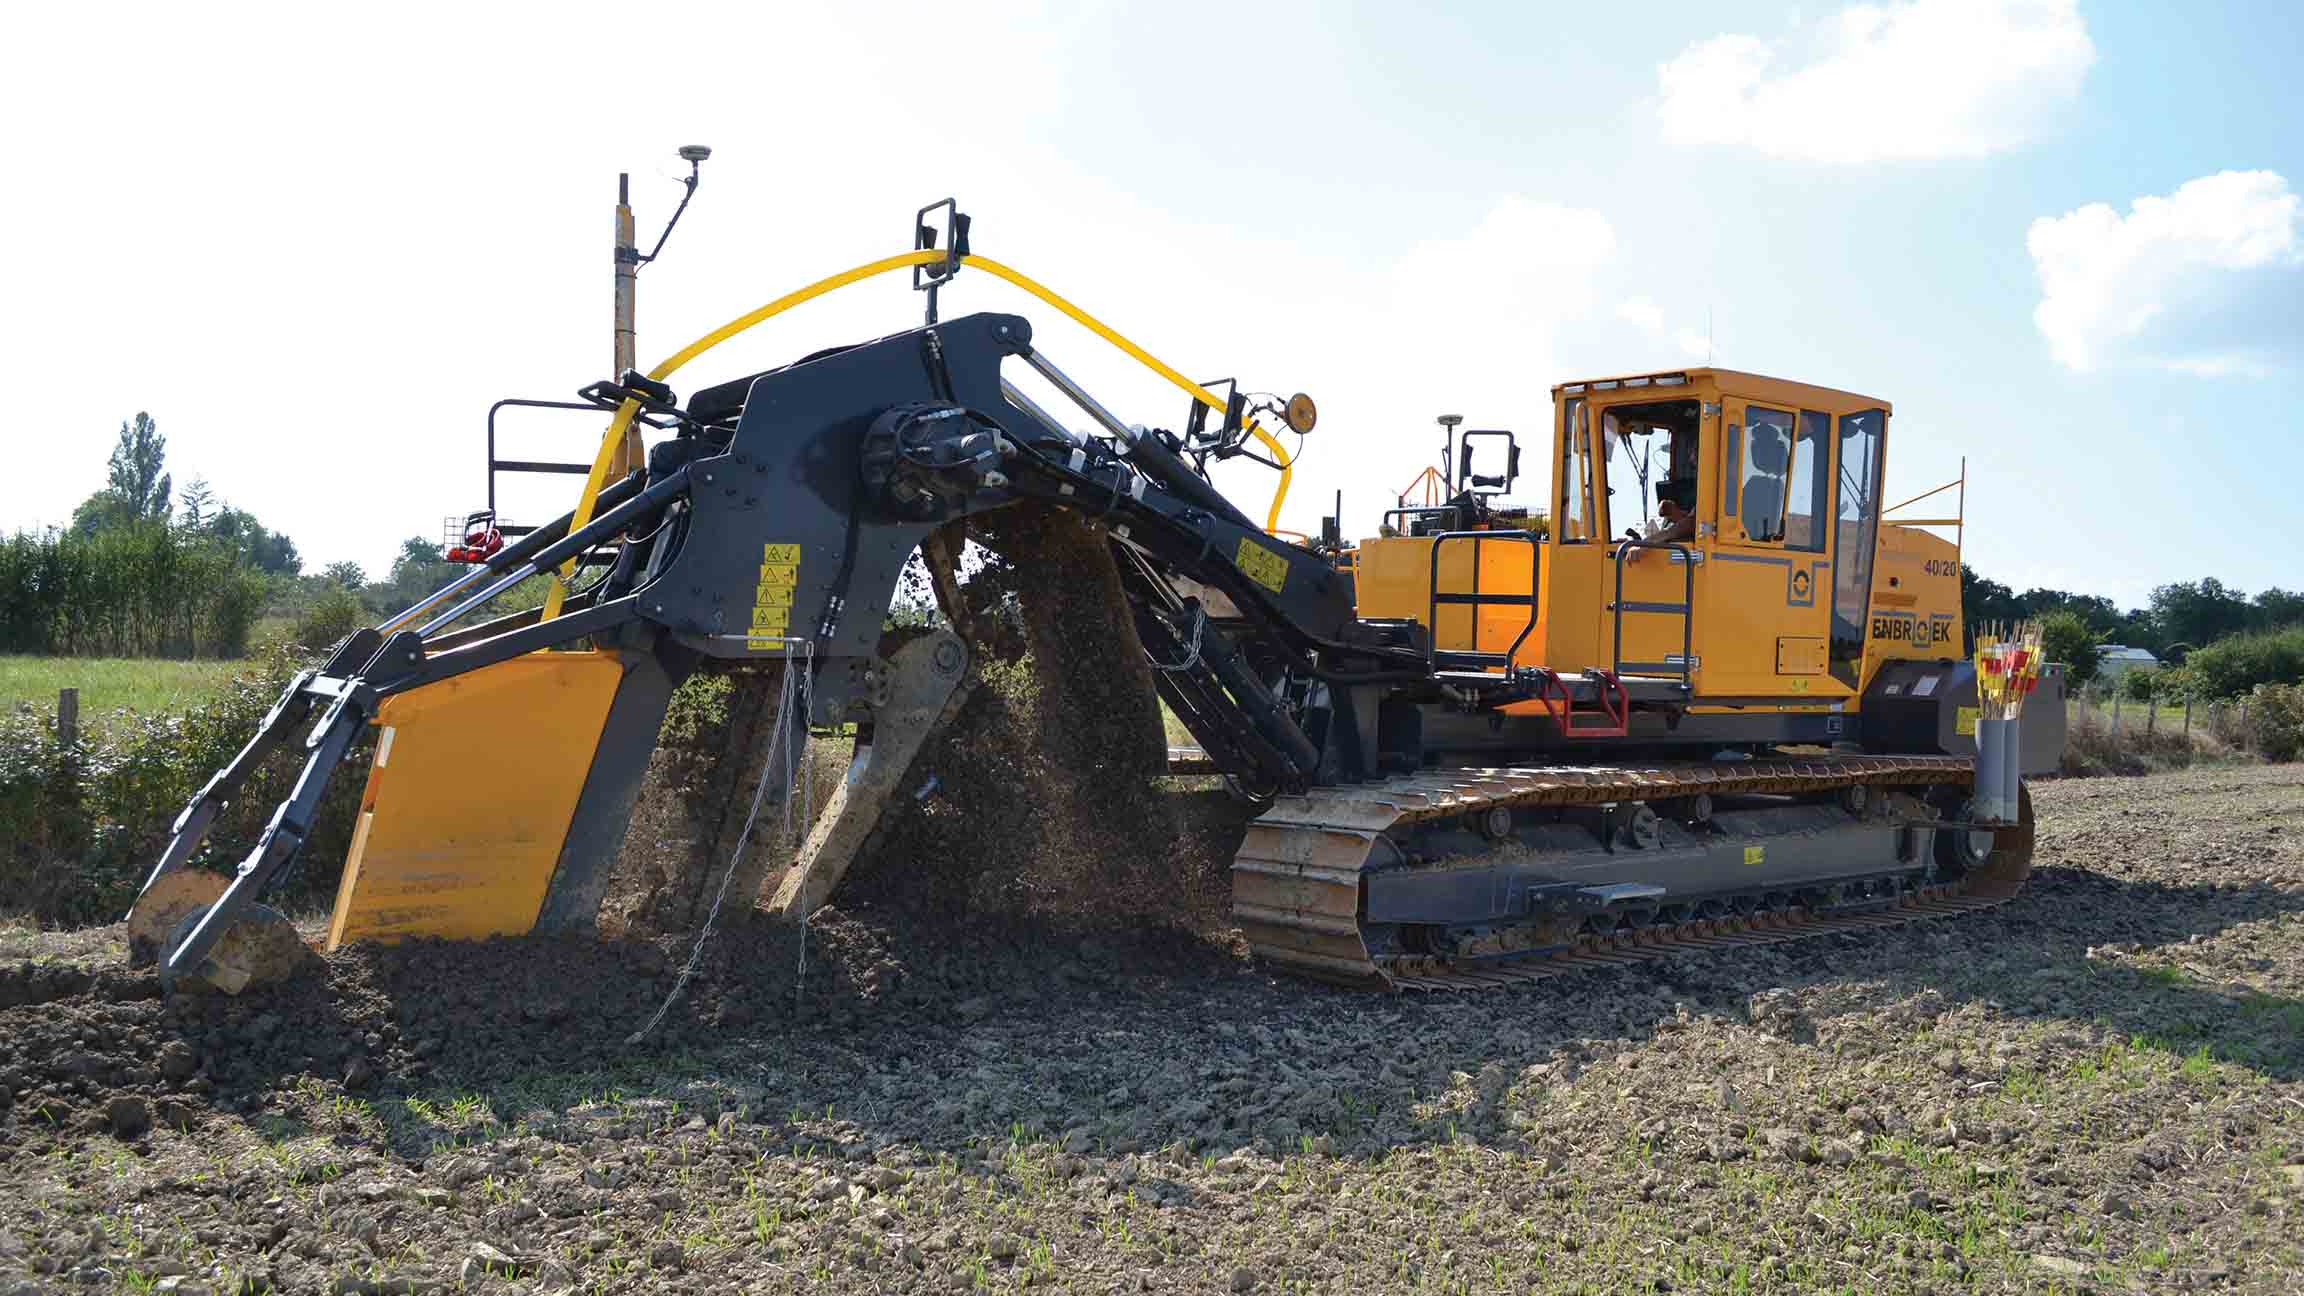 lamma preview 2017 finding a niche insights fg insight gps guidance for drainage trenchers has been a major milestone for the industry and for mastenbroek